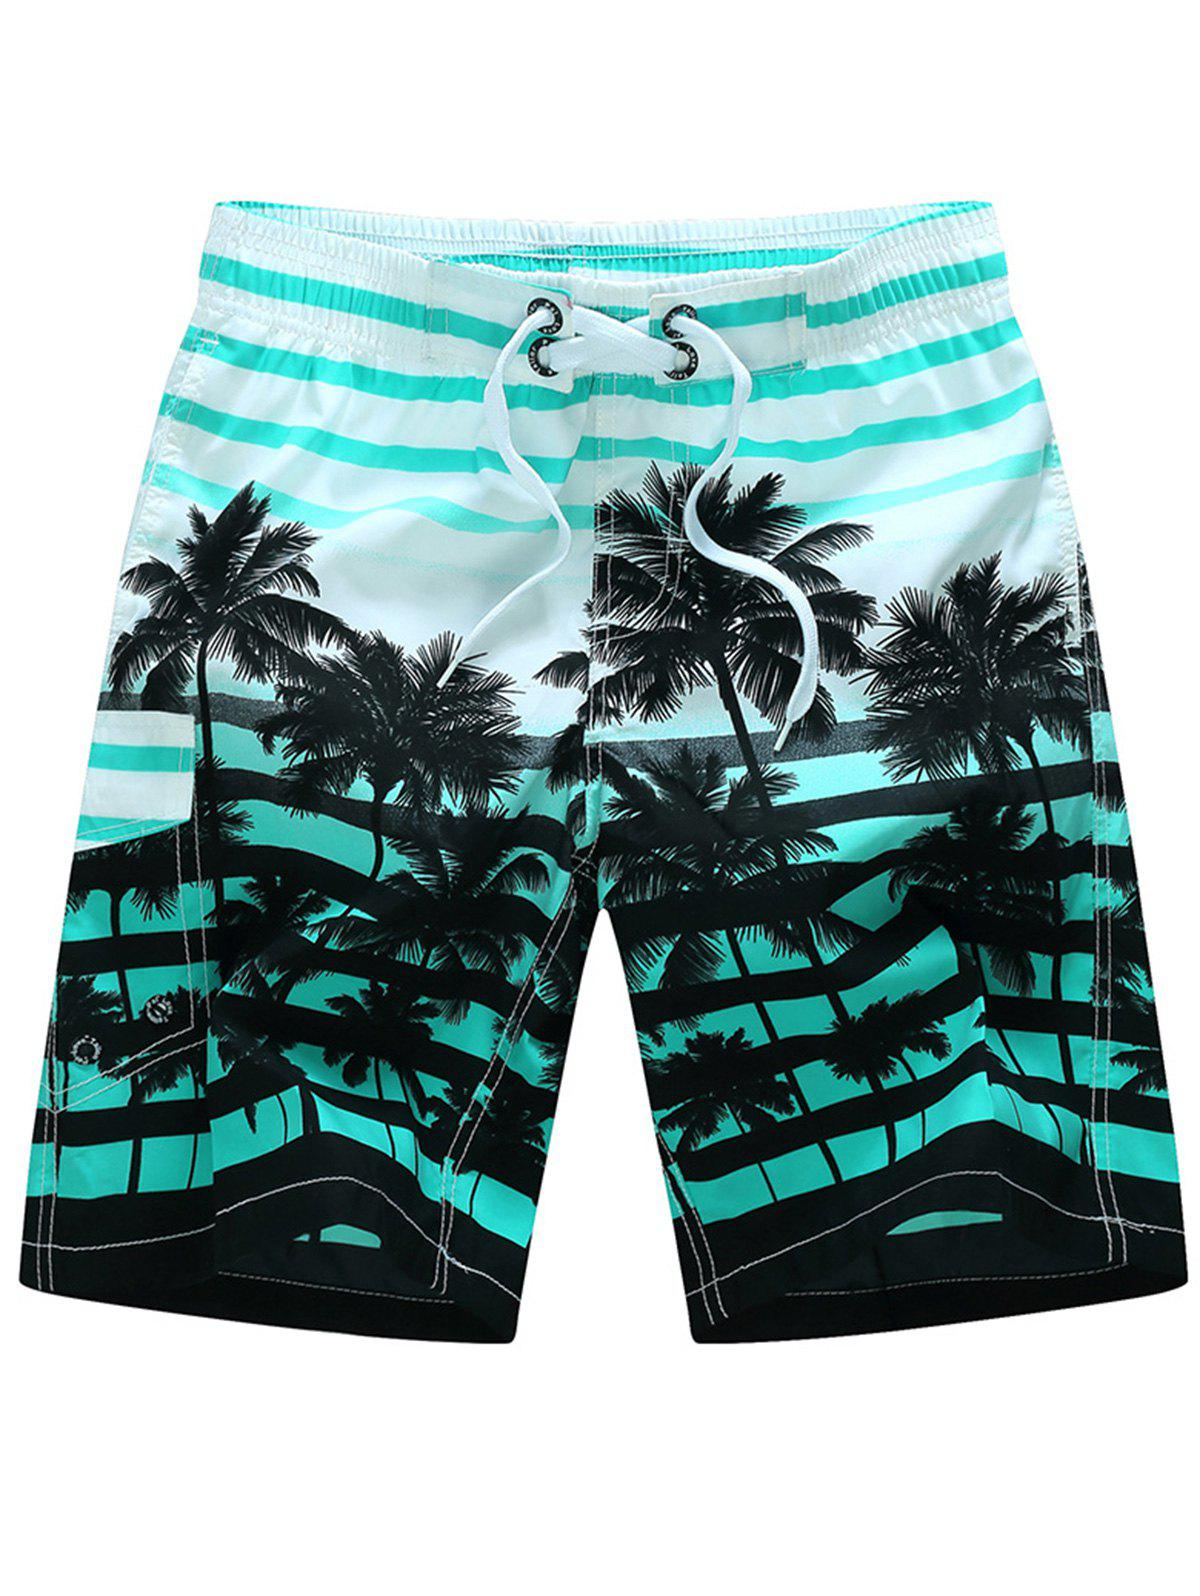 Plam Tree Striped Hawaiian Shorts - GREEN 4XL